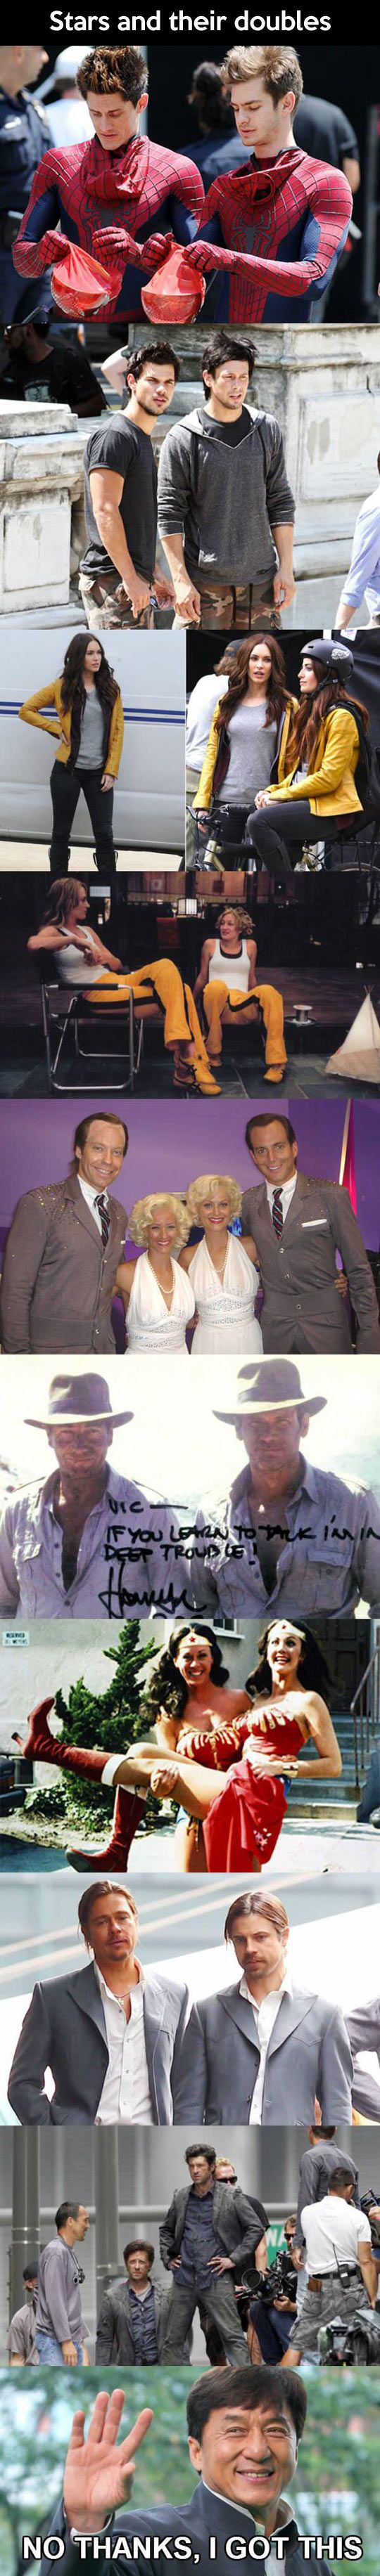 Here are a few movie stars and their stunt doubles.